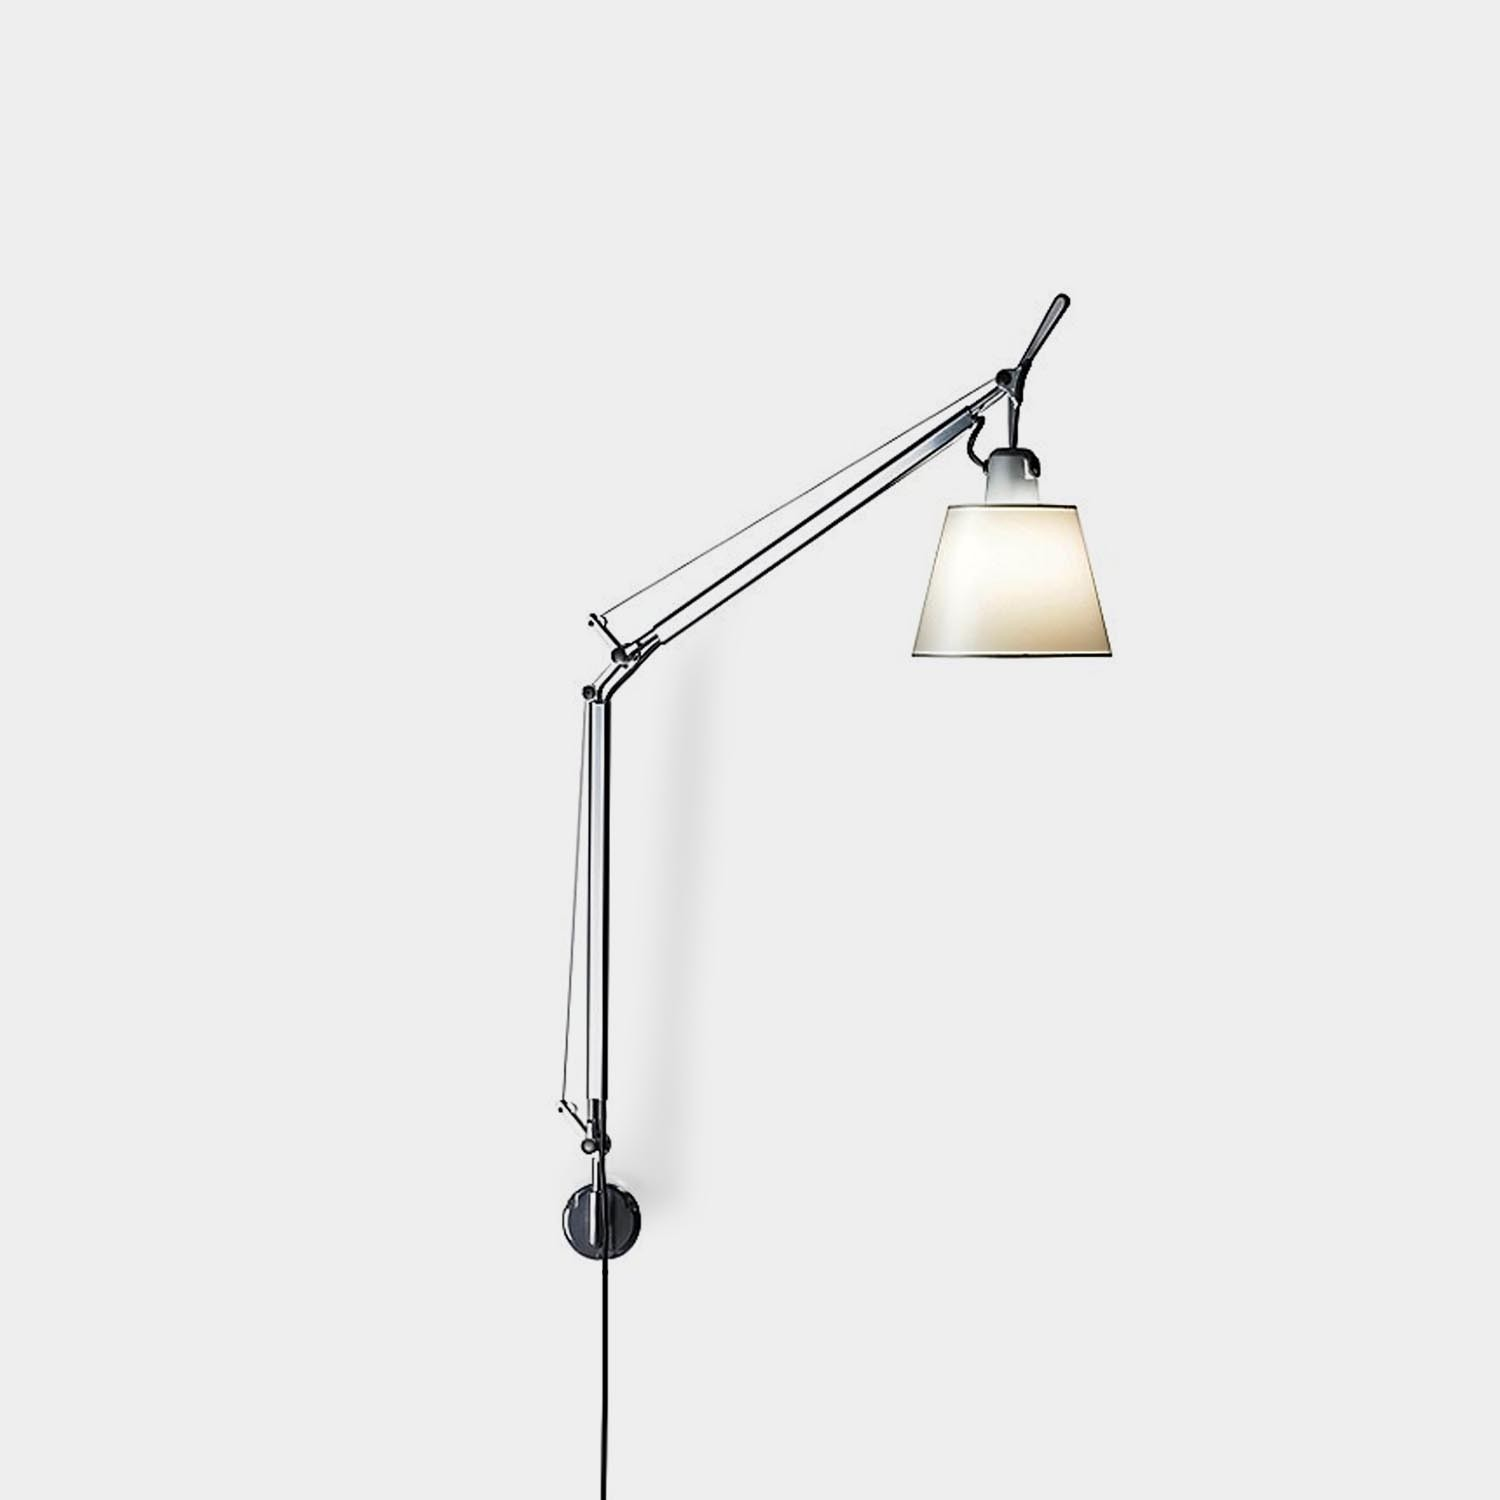 Wall Lamp Tolomeo Articulated with Shade